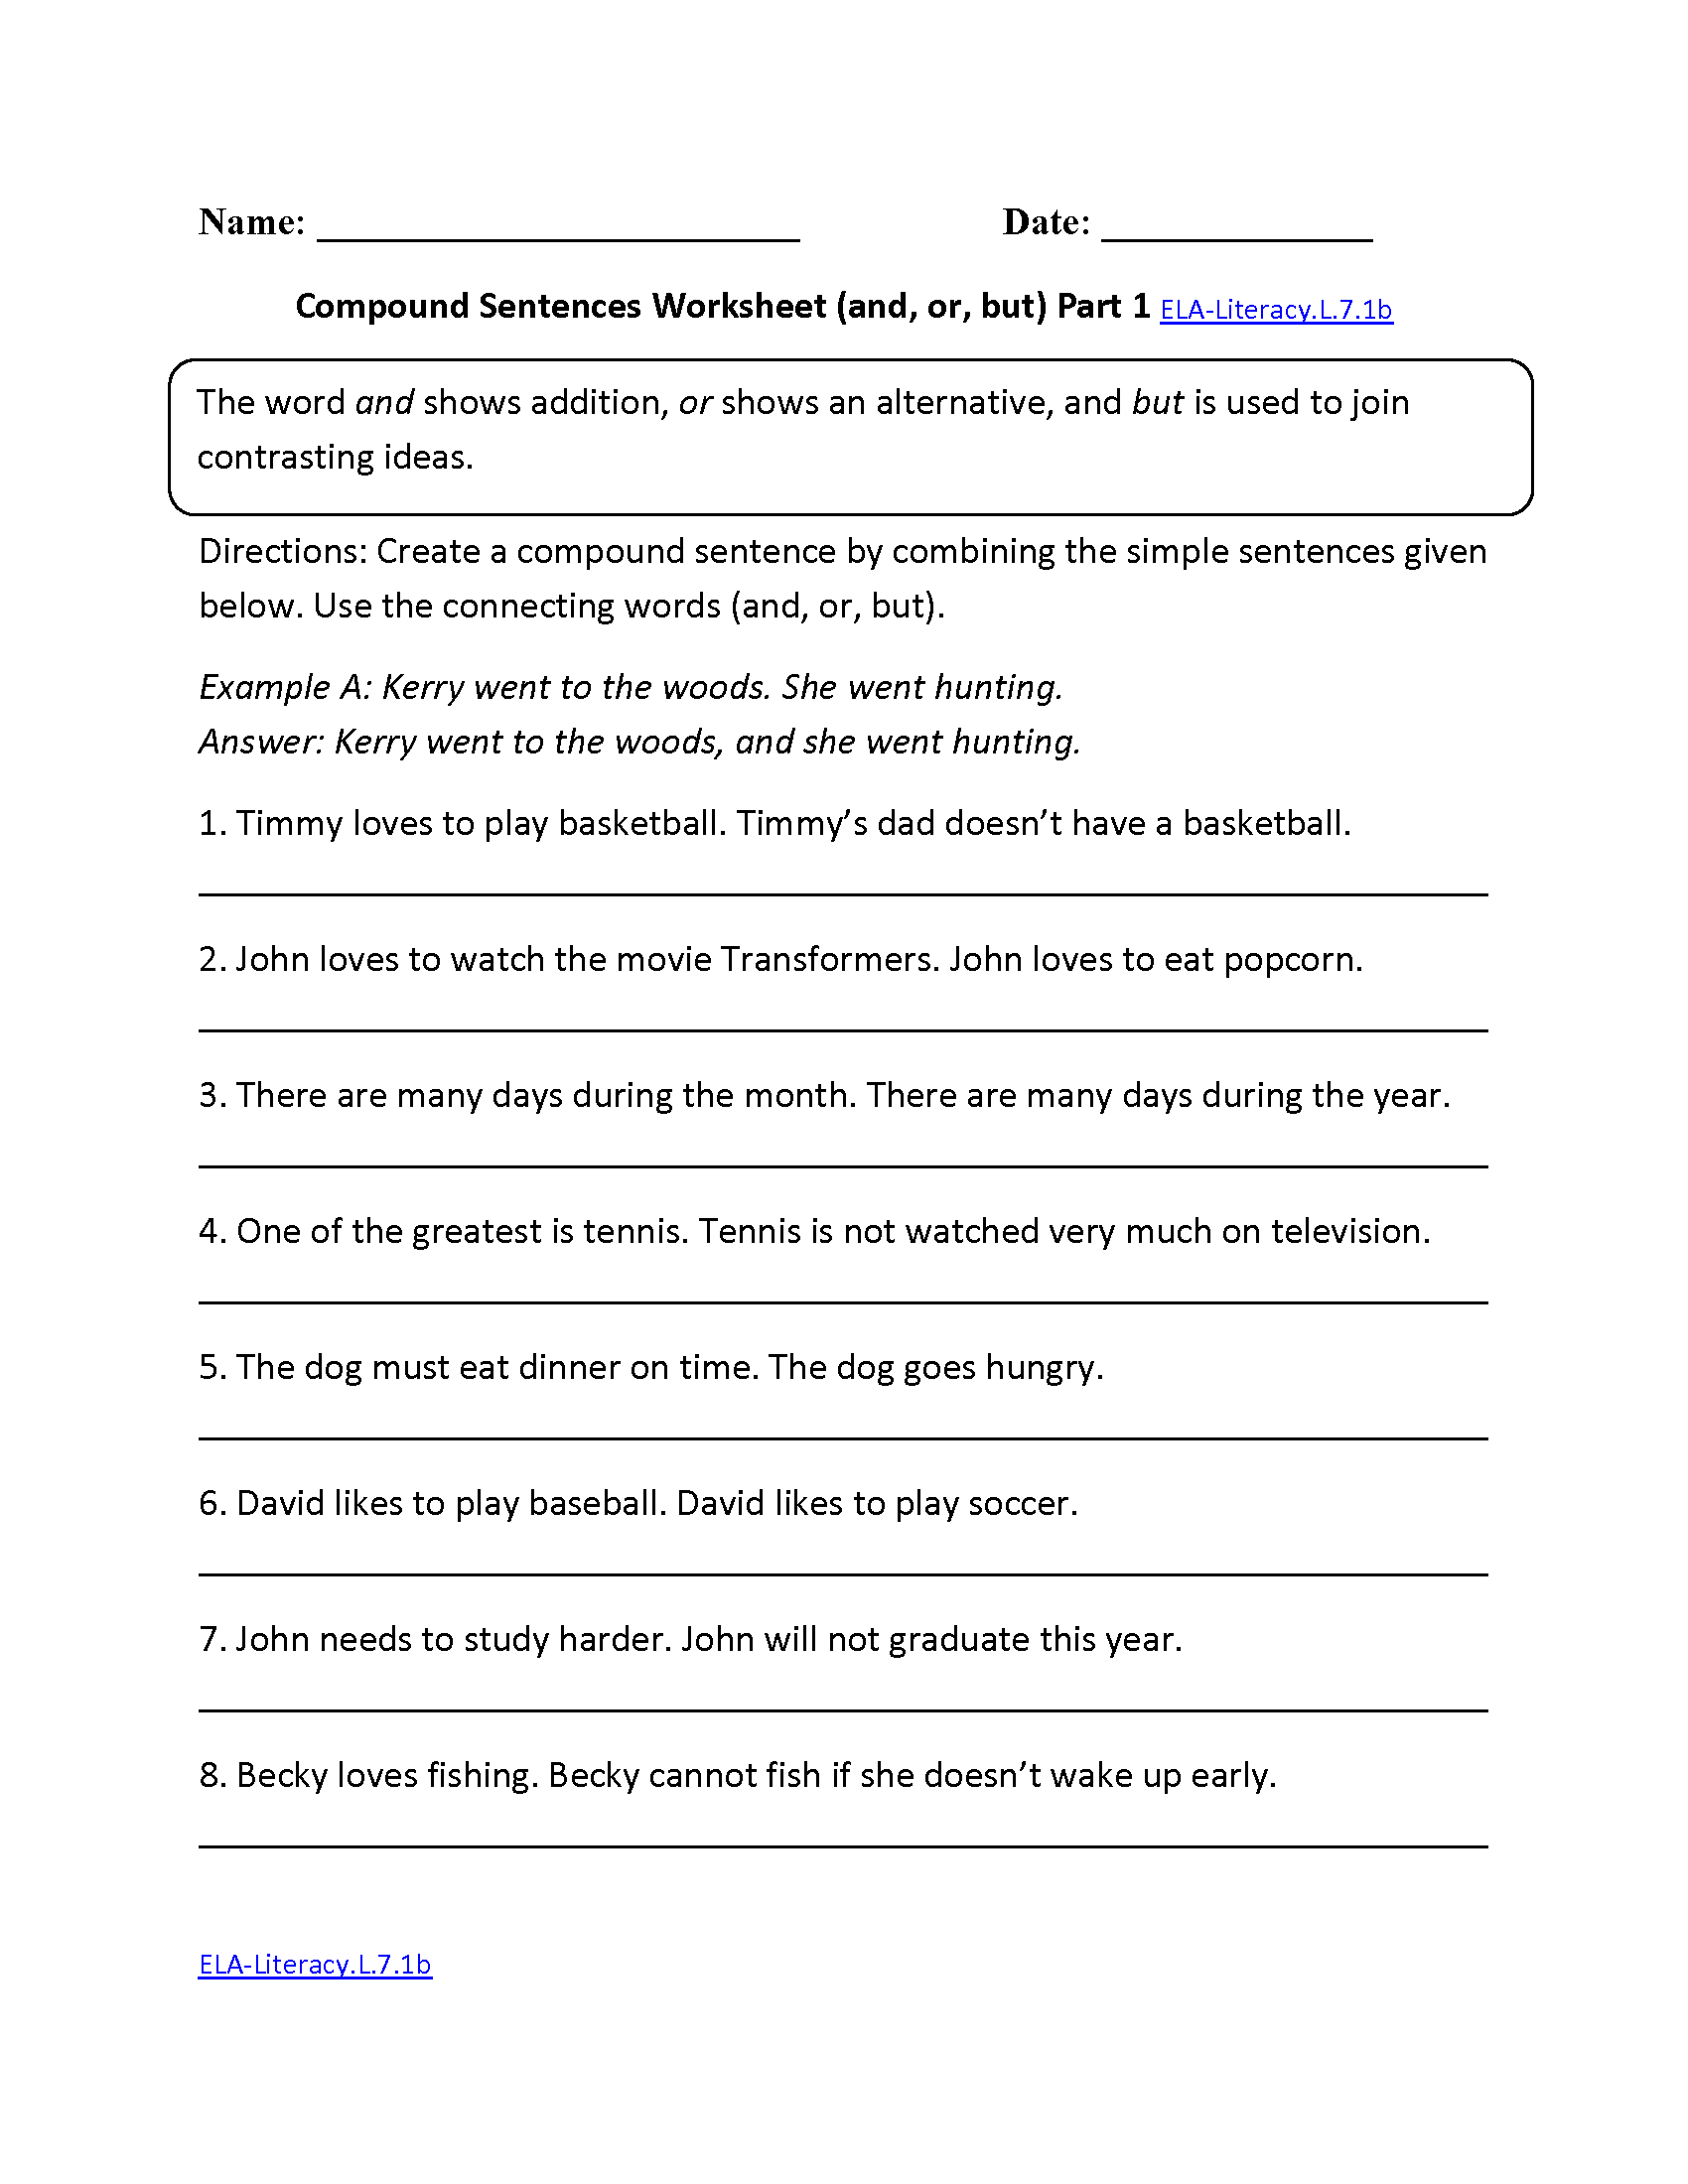 Uncategorized 6th Grade Vocabulary Worksheets 7th grade common core language worksheets compound sentences worksheet ela literacy l 7 1b worksheet